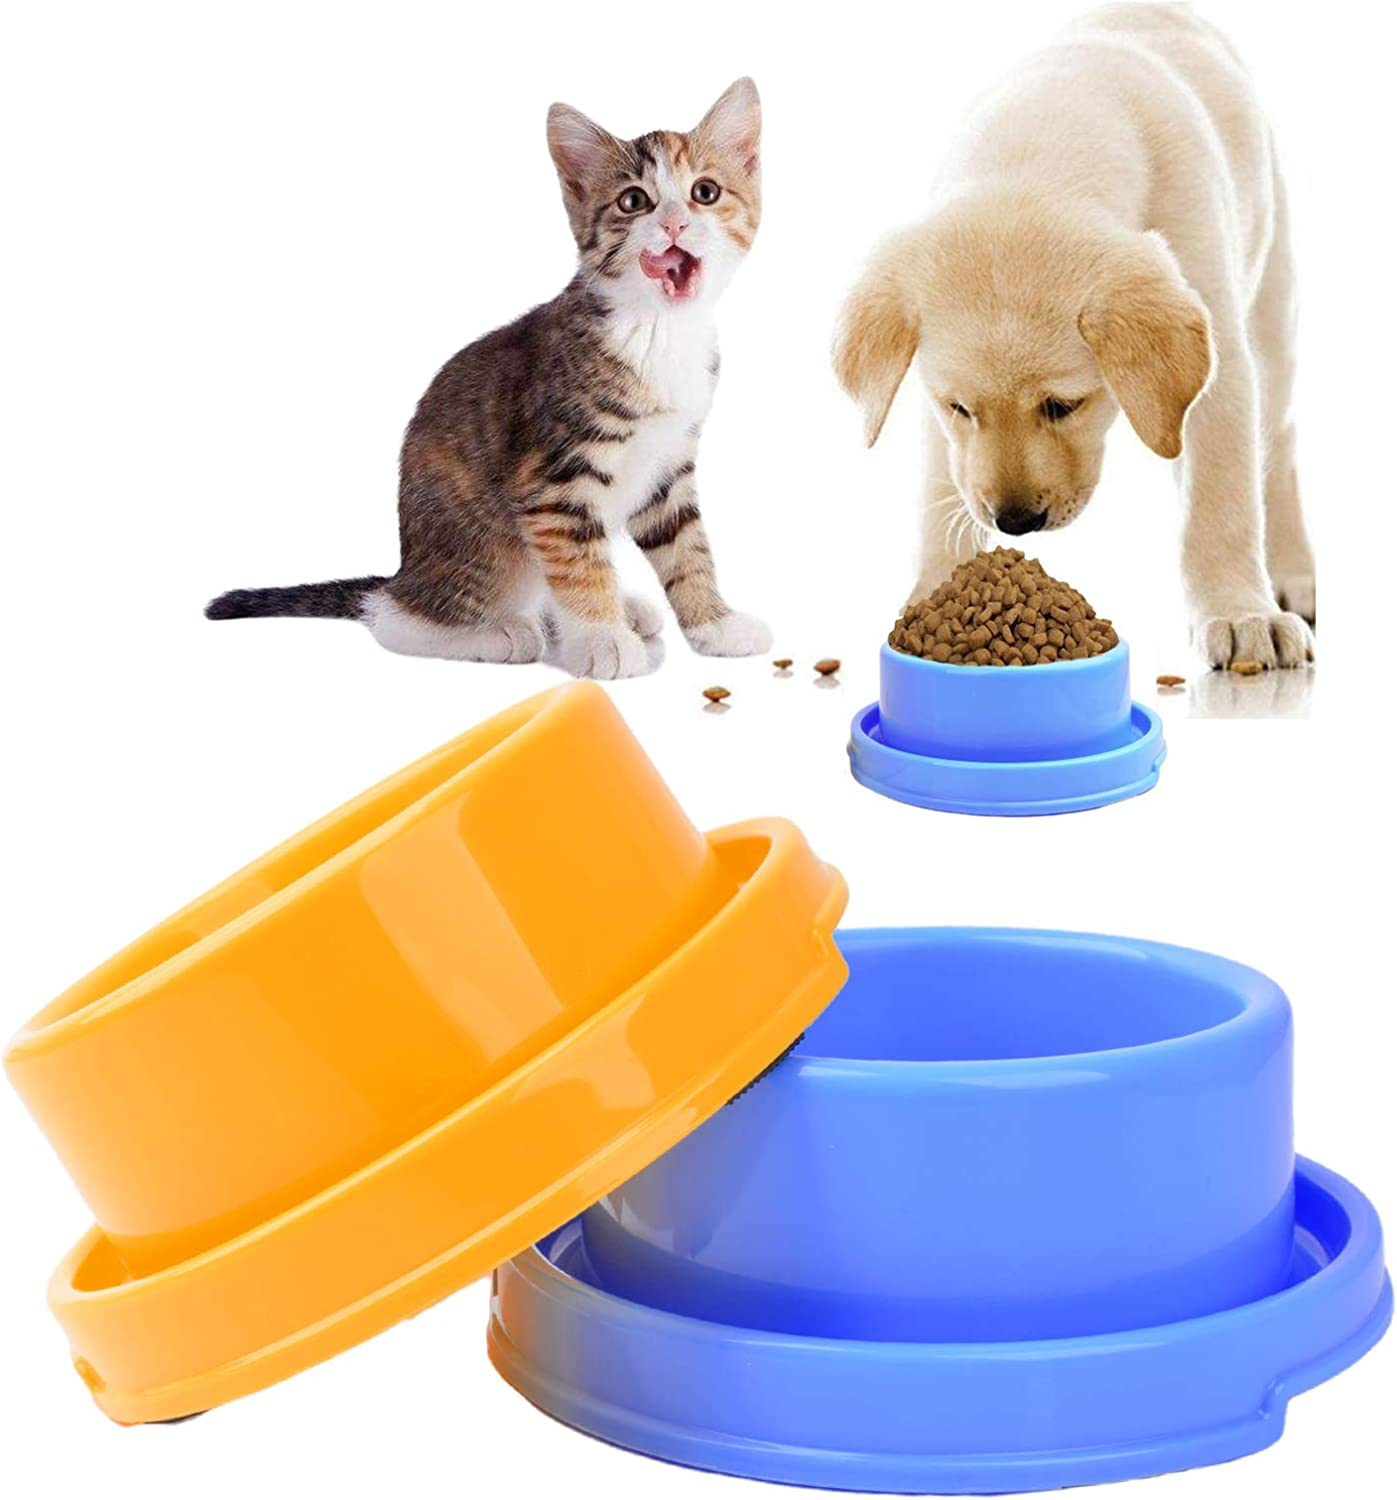 2pcs Dog Bowls Pet Cat Puppy Food Bowls Plastic Round No Spill Water Food Feeder Dish Colorful Feeding Eating Bowls